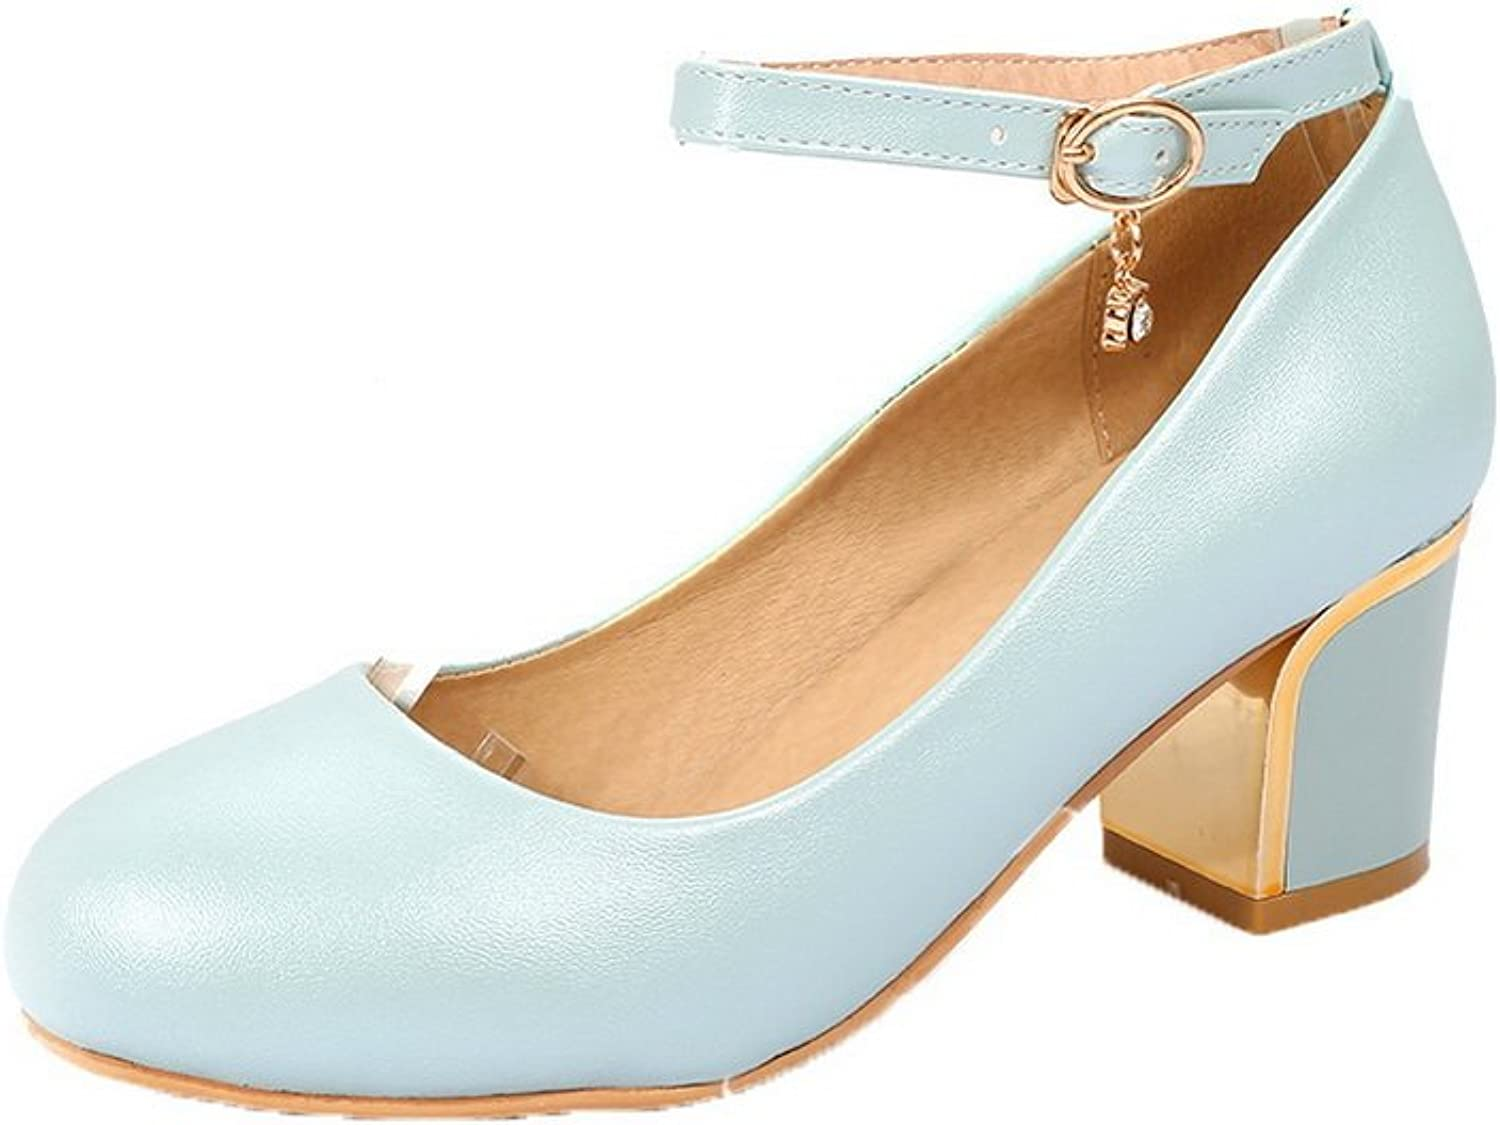 AllhqFashion Women's Solid PU Kitten-Heels Buckle Closed-Toe Pumps-shoes